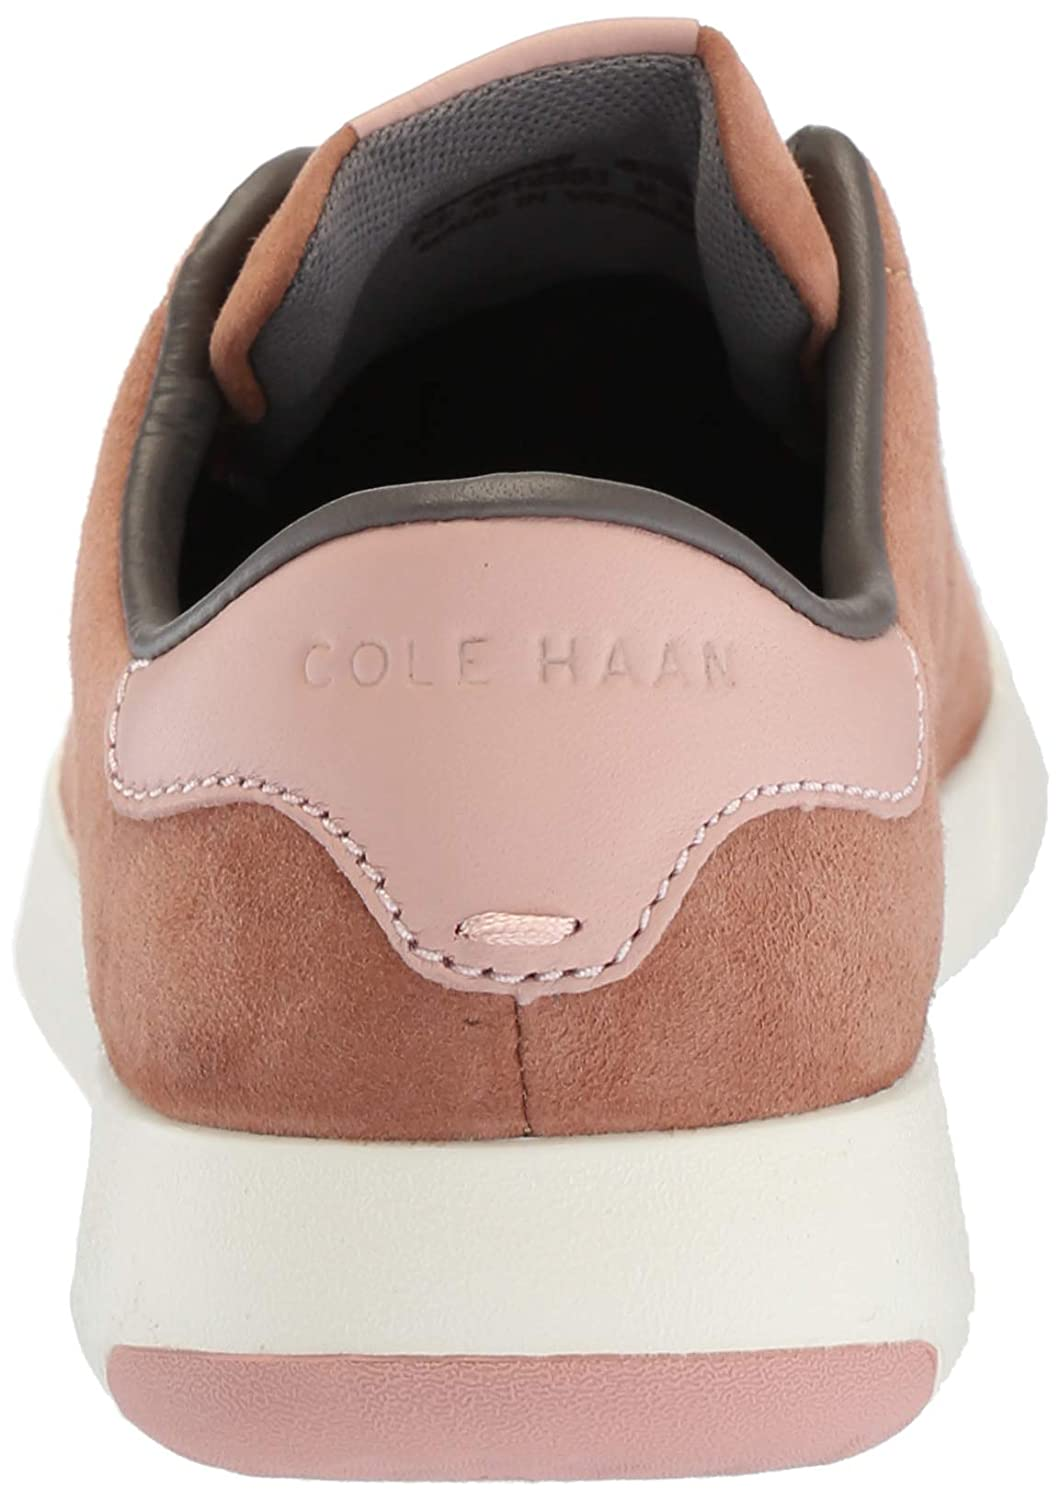 Man/Woman Cole Haan B07DY8HDZF Fashion Sneakers Elegant and sturdy set Fine meal Fine set art Valuable boutique a5b017